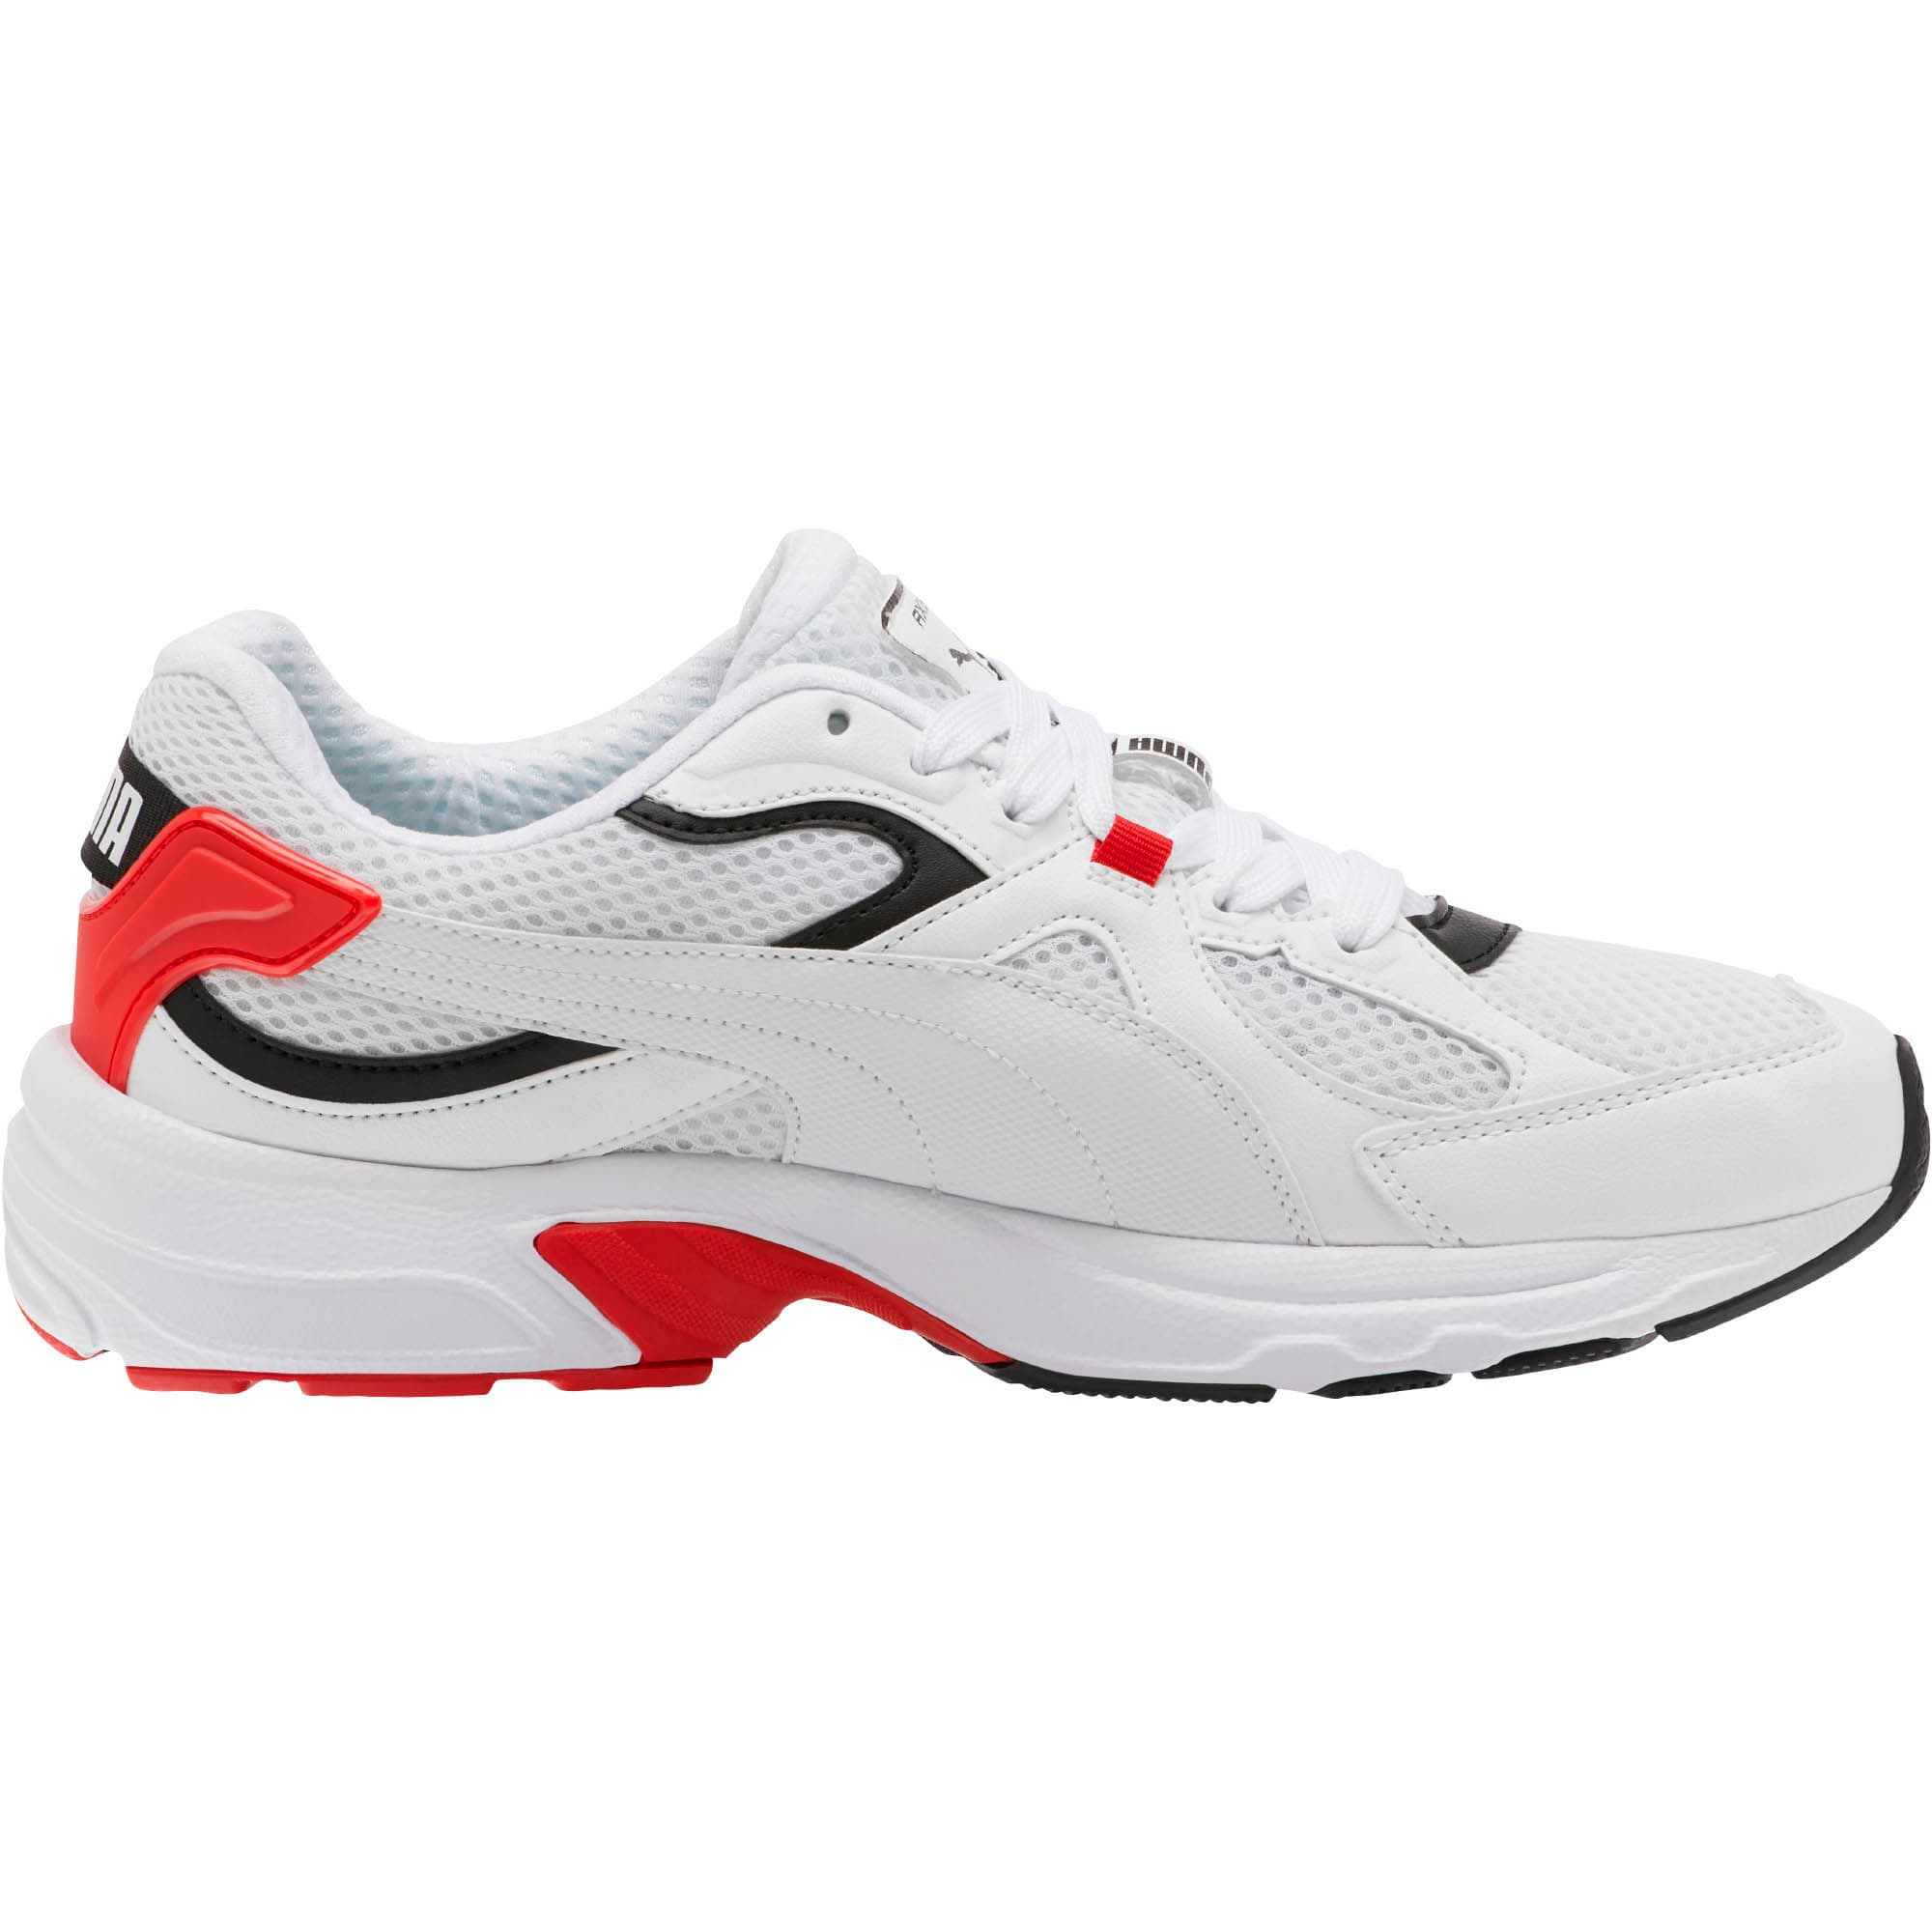 Thumbnail 4 of Axis Plus 90s Sneakers, Puma White-Puma Black-Red, medium